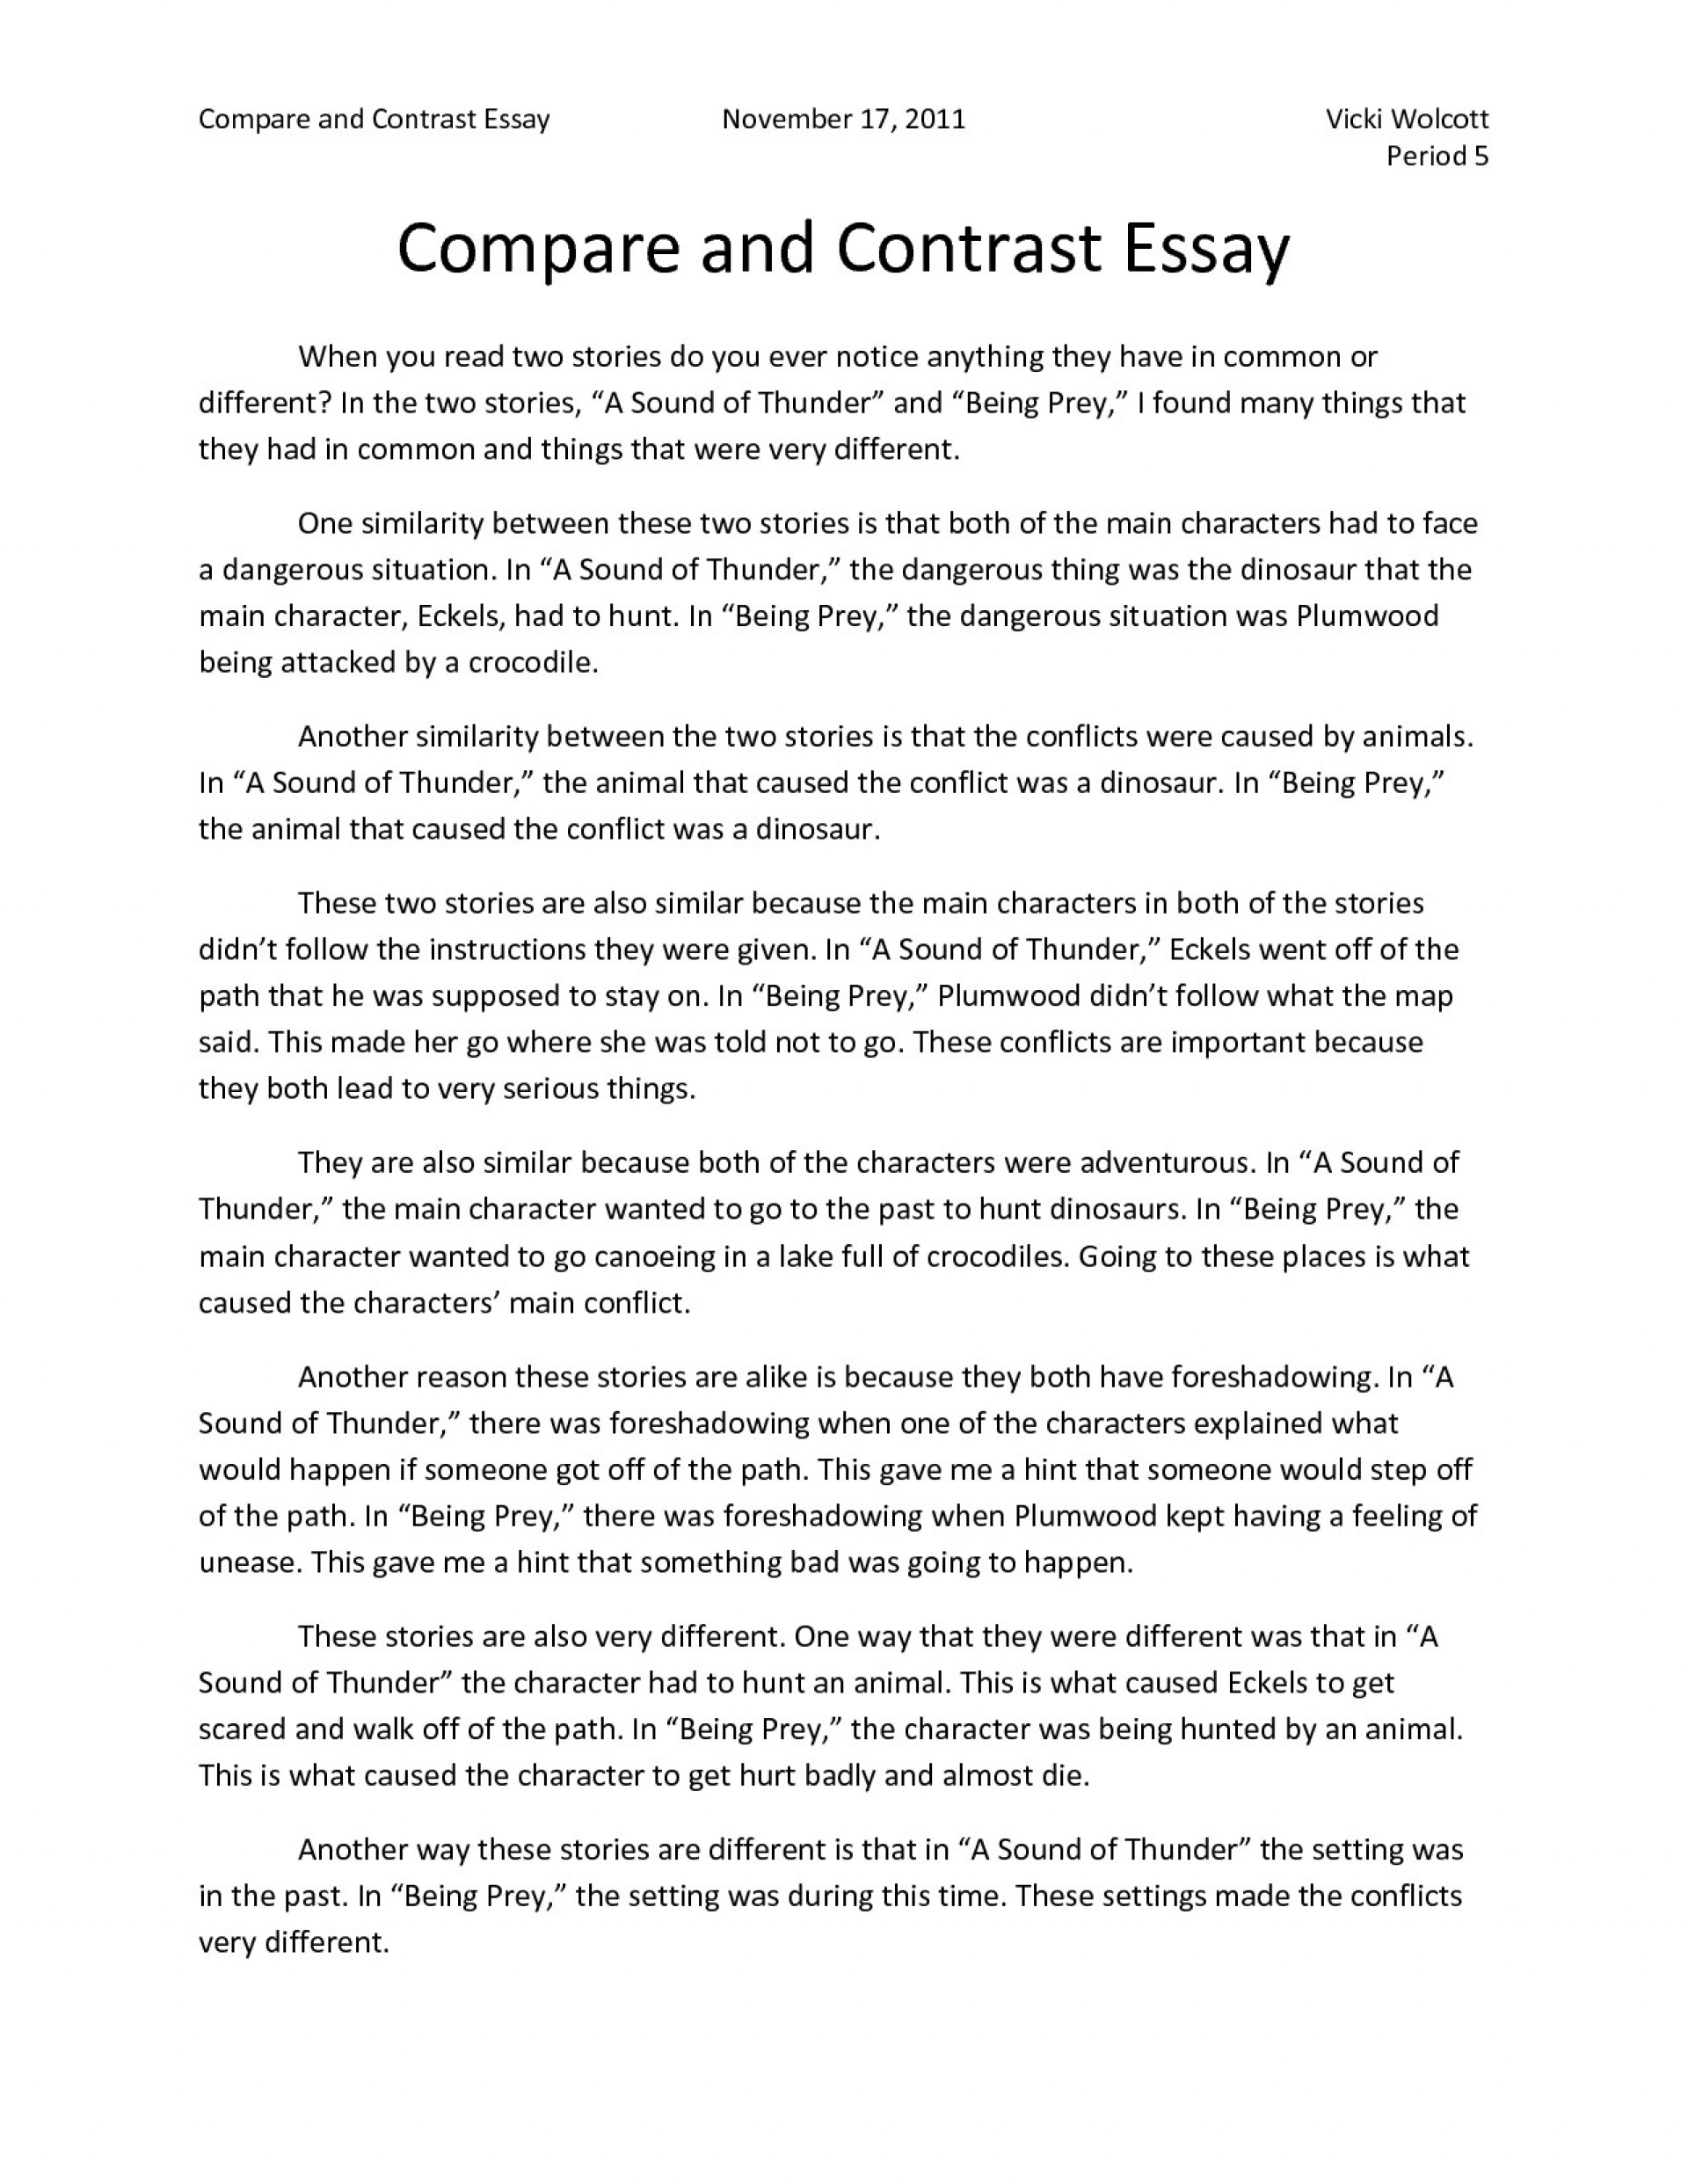 005 Essay Example An Of Compare And Contrast Comparison Ideas Awful Rubric Template Word 1920